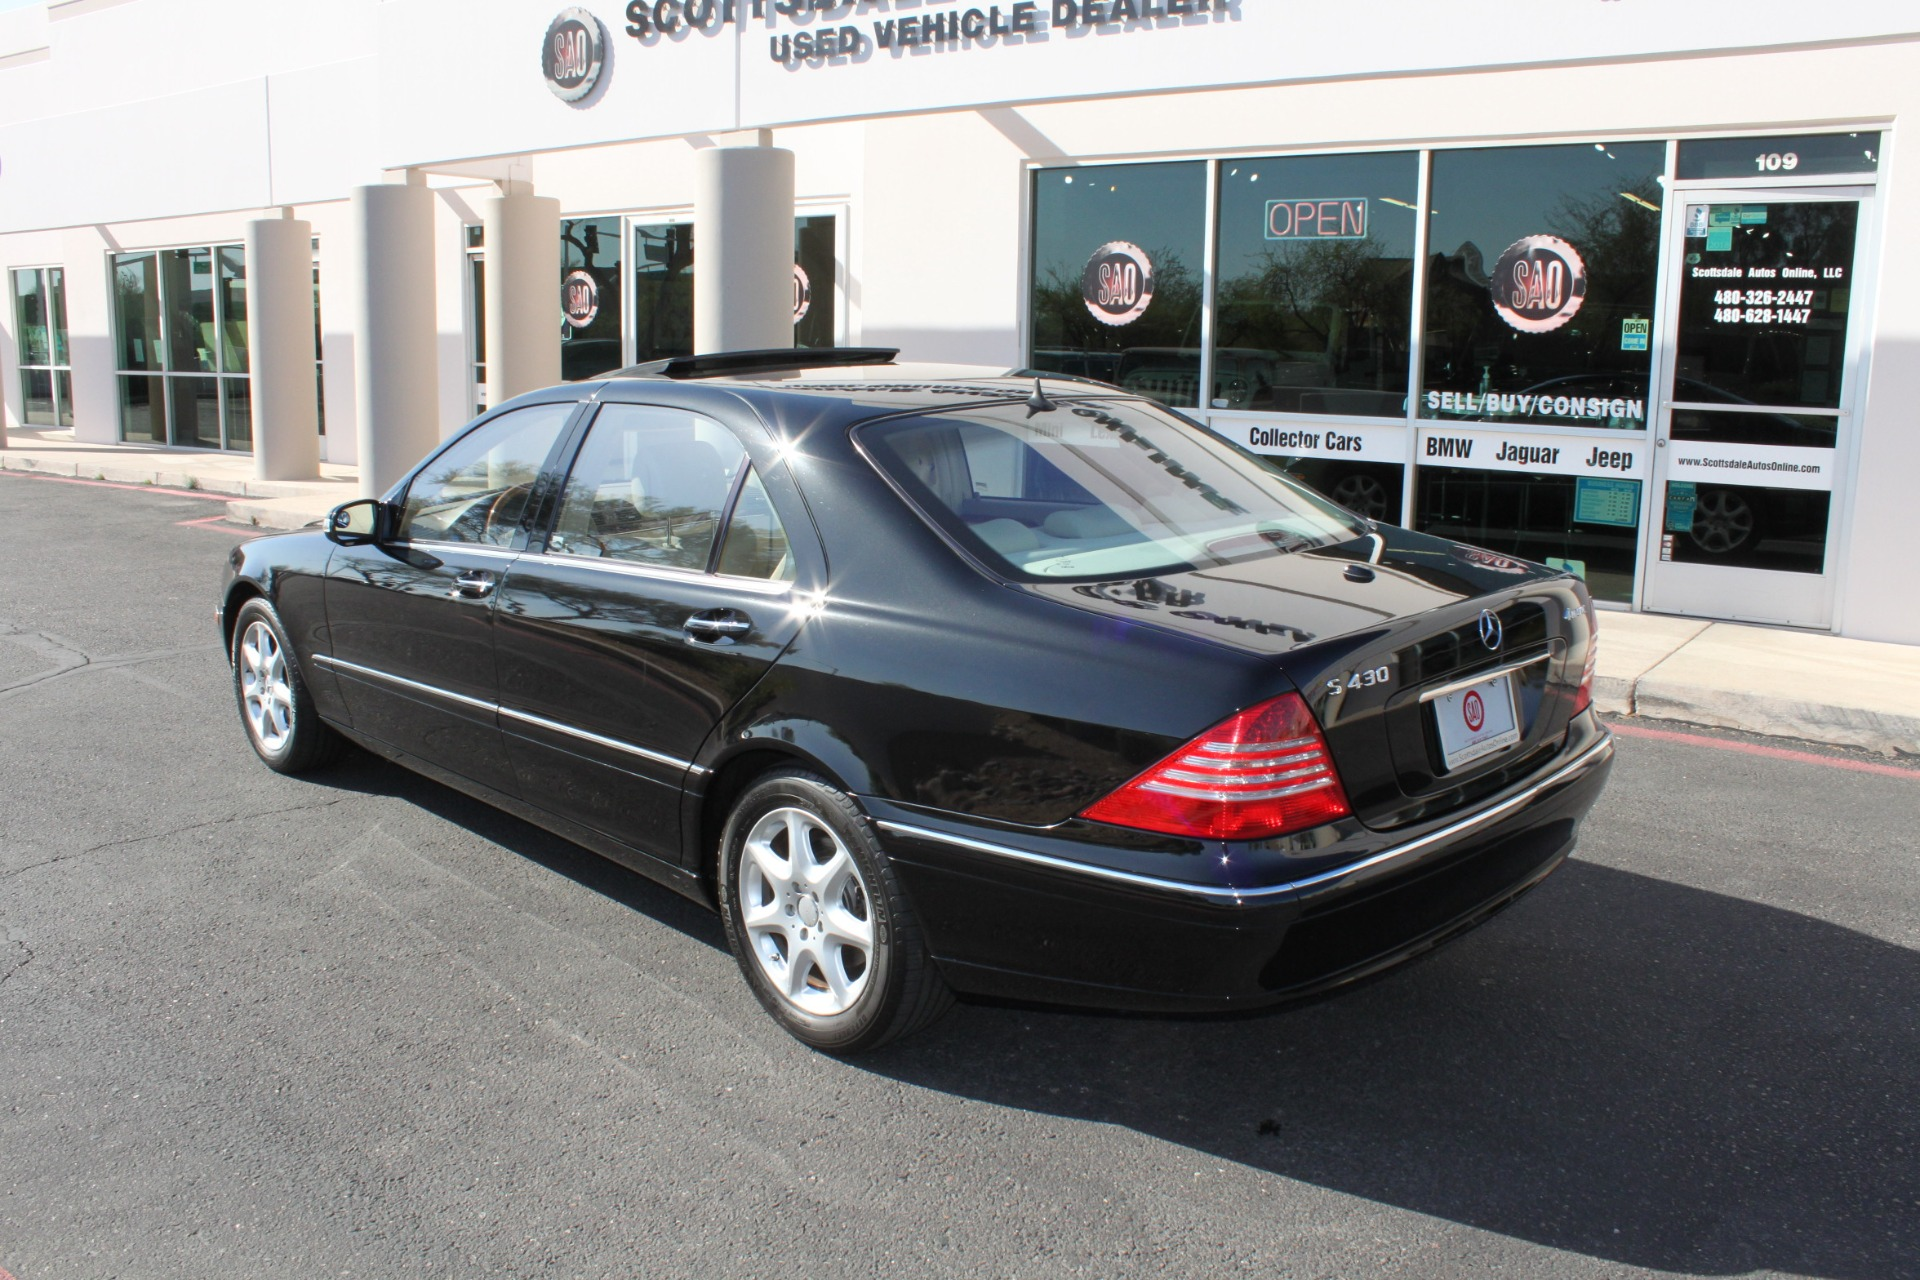 Used-2006-Mercedes-Benz-S-Class-43L-Toyota